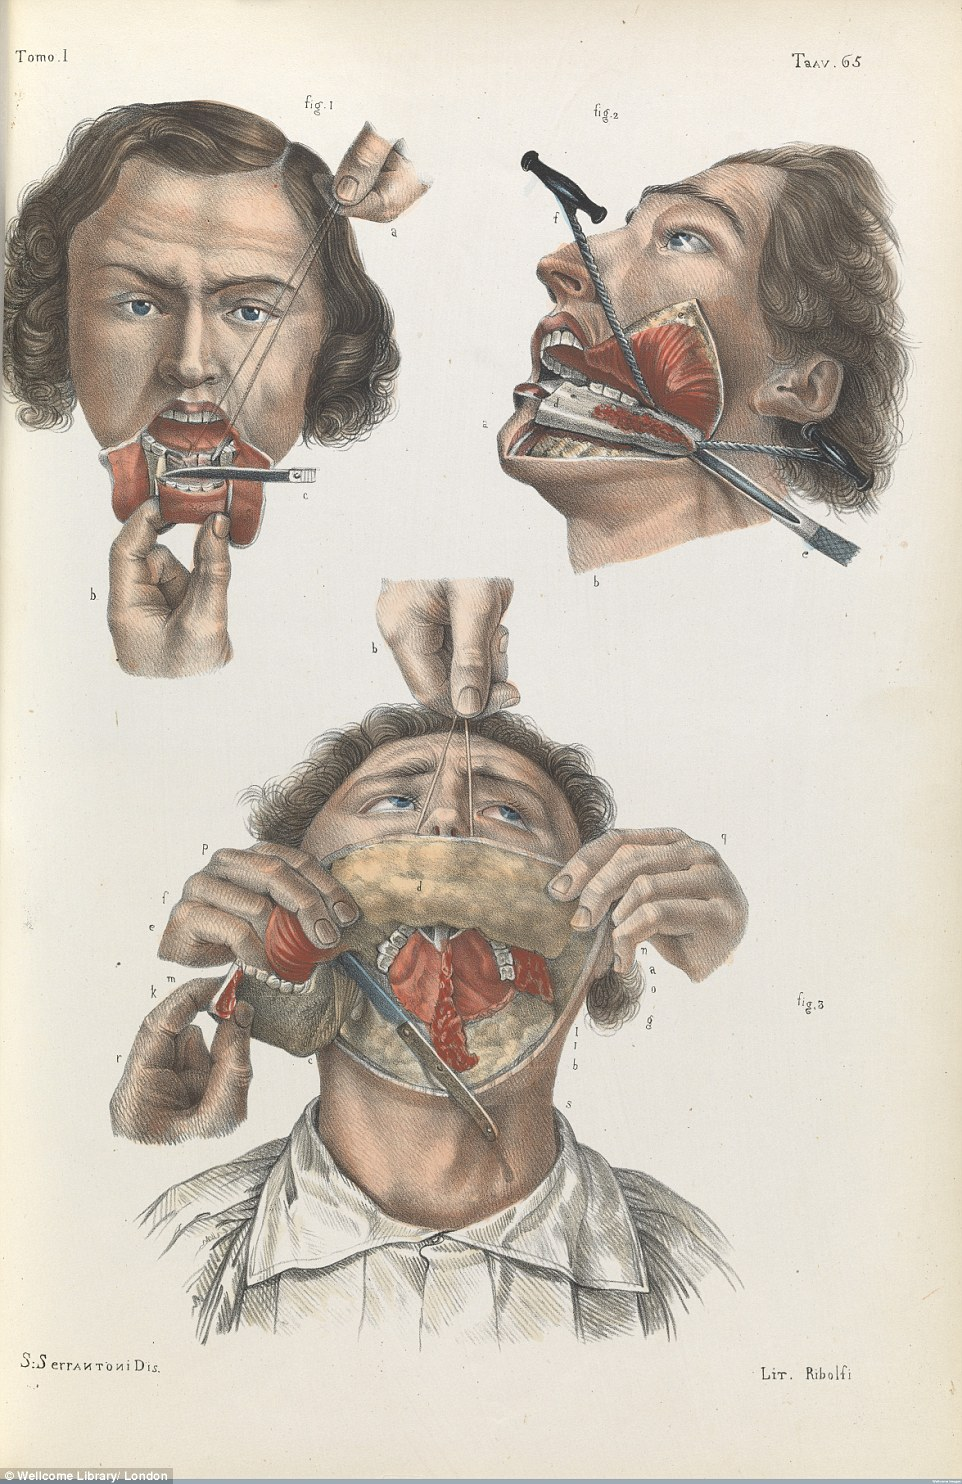 Drawn brains surgical Of the lower from 1841